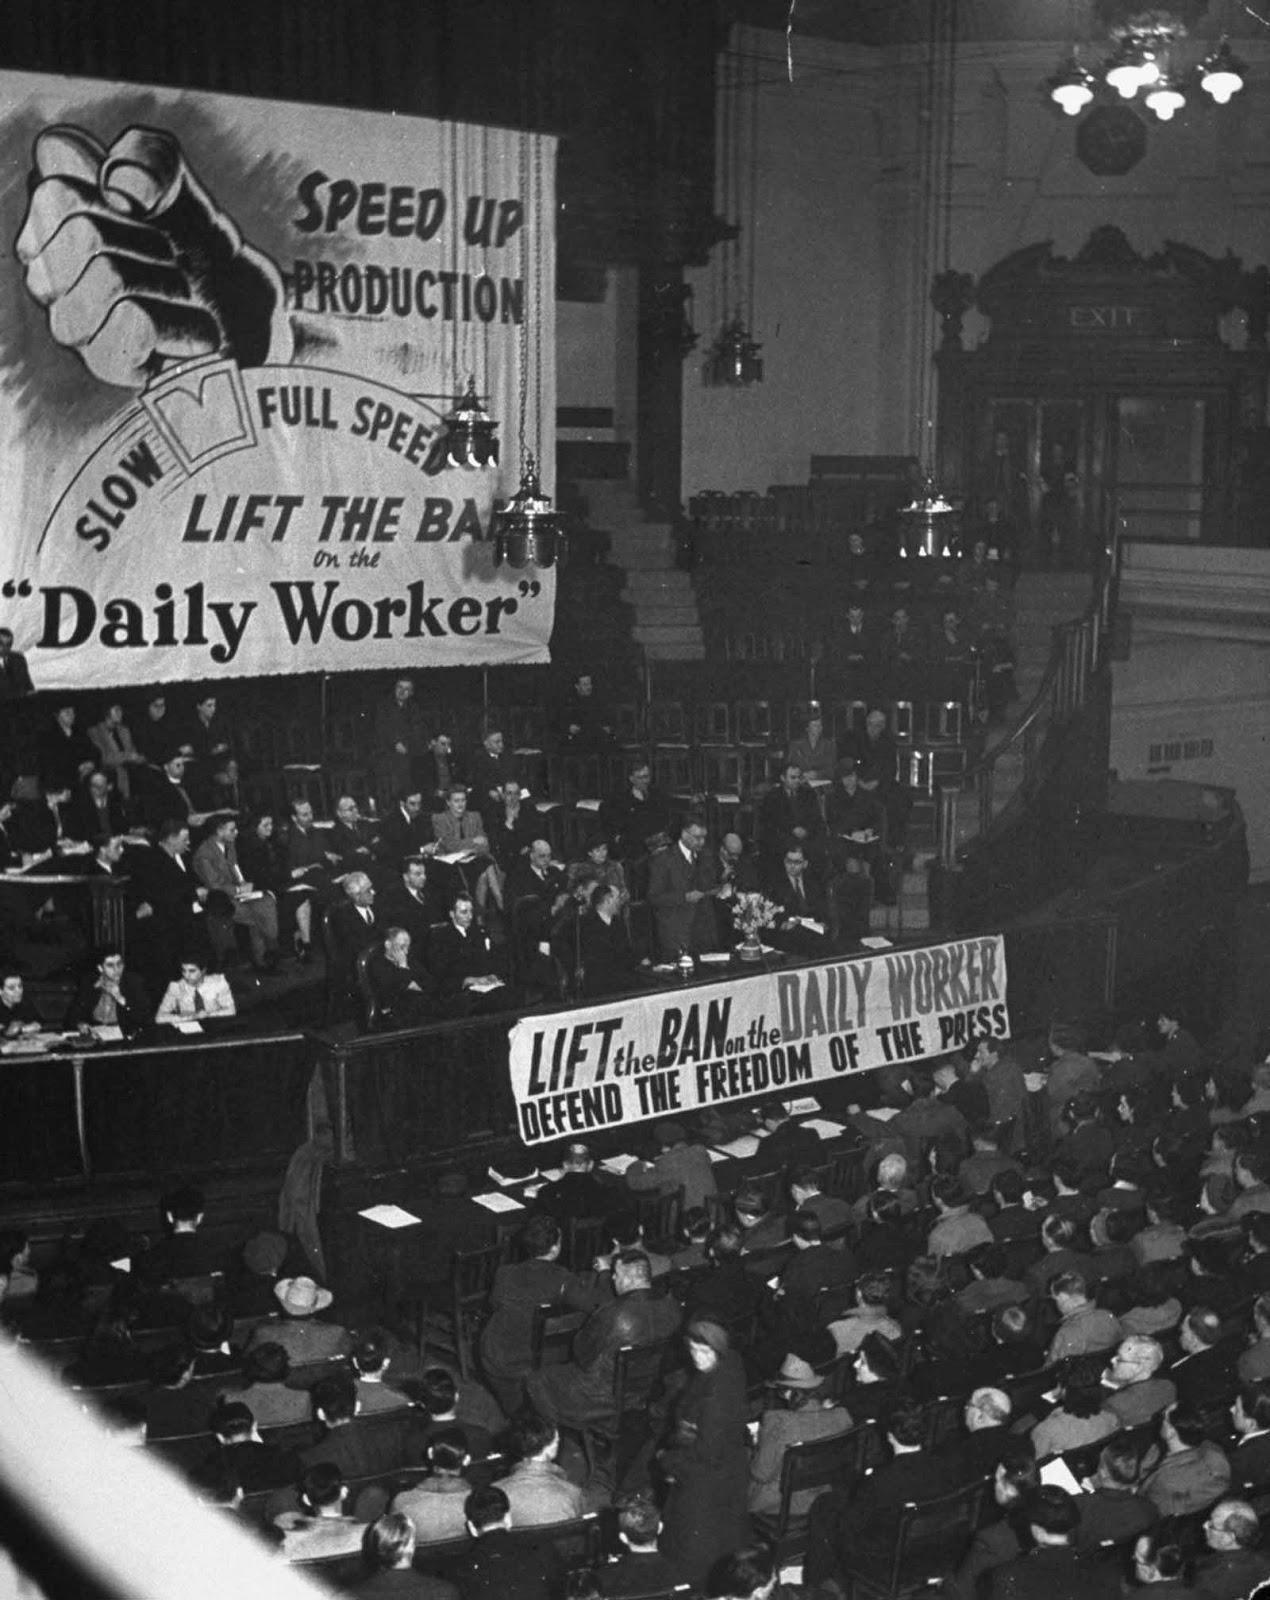 Meeting in the Westminster Central Hall, London, organized by the Communist Party to gain support for the campaign to lift the ban on the Daily Worker newspaper. 1942.